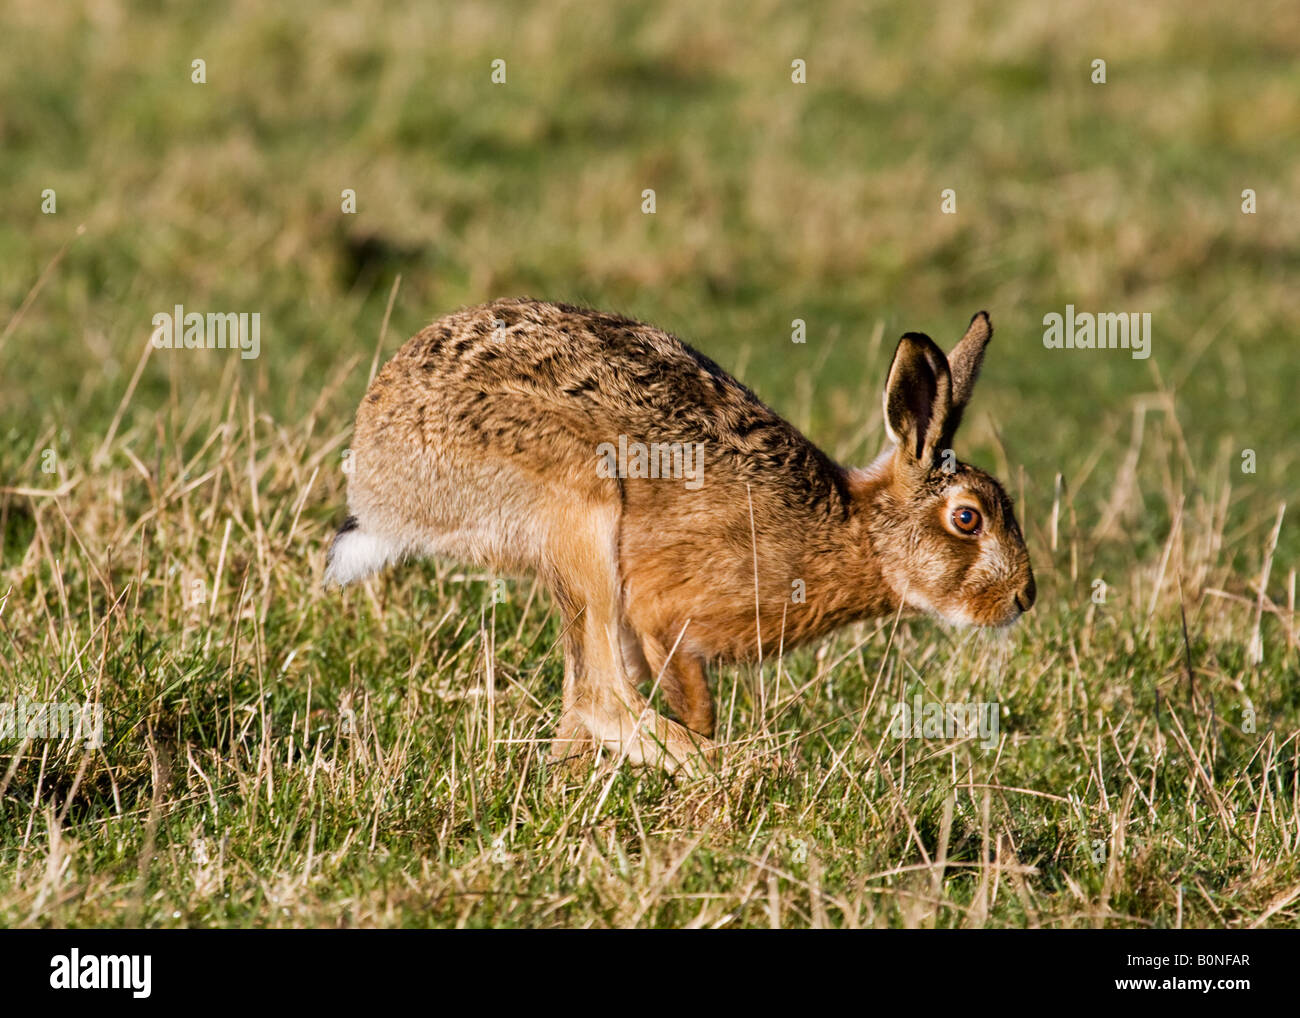 Brown hare running - Stock Image